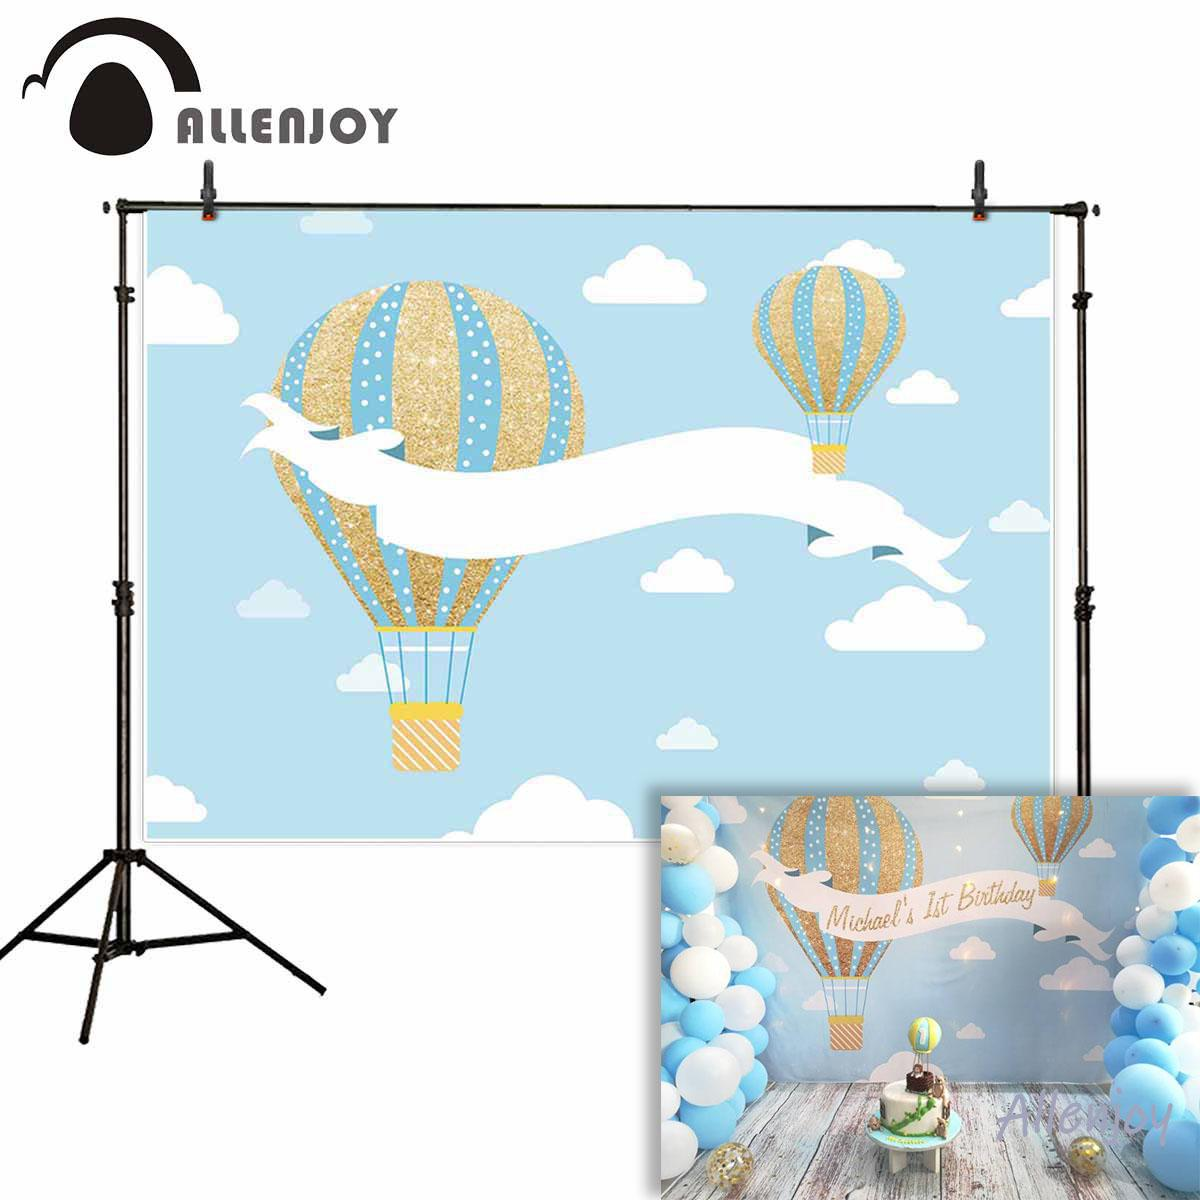 hoto Studio Backgrounds Allenjoy backgrounds for photography studio Blue sky white cloud gold blue hot air balloon birthday backdrop cust...